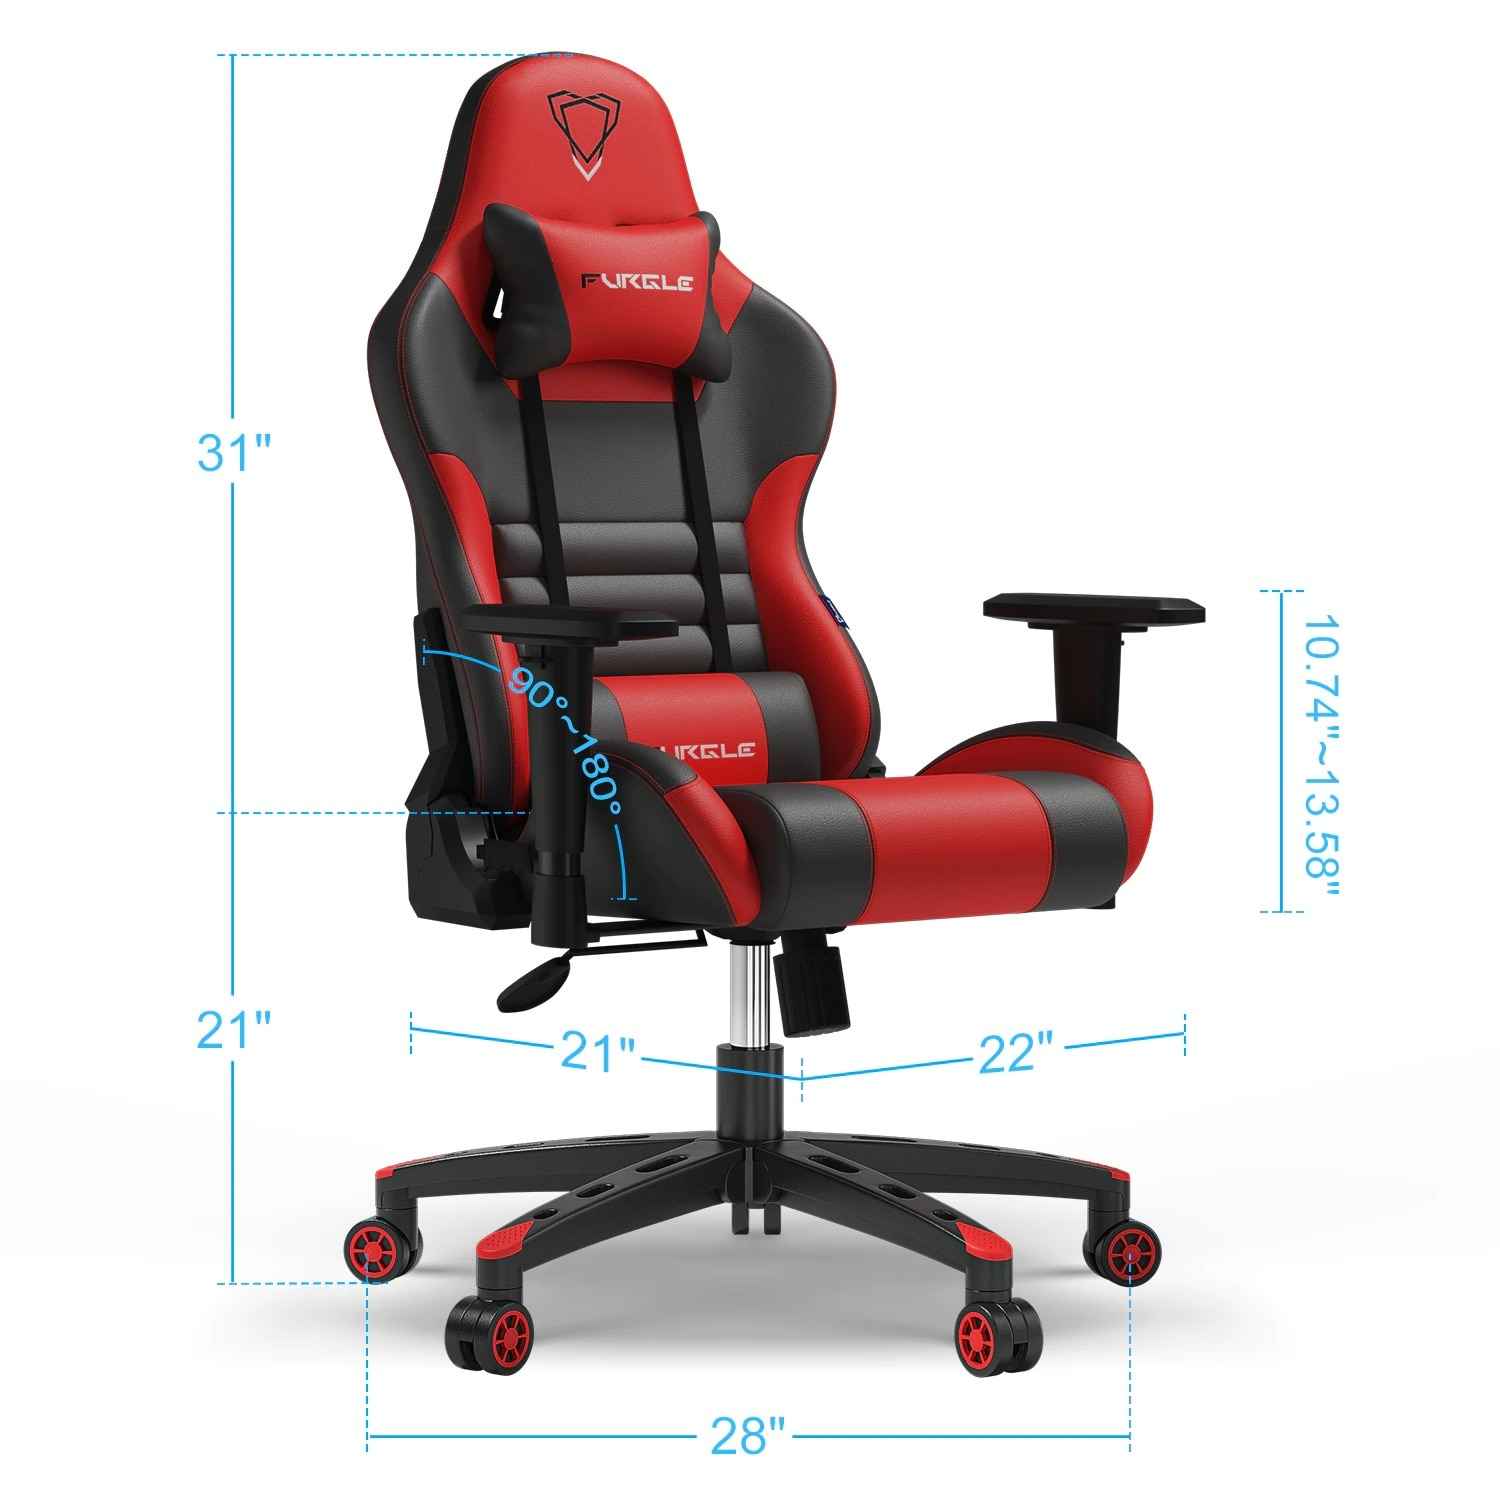 FURGLE ADJUSTABLE GAMING CHAIR Gaming Chair Black & white Not Specified - 3